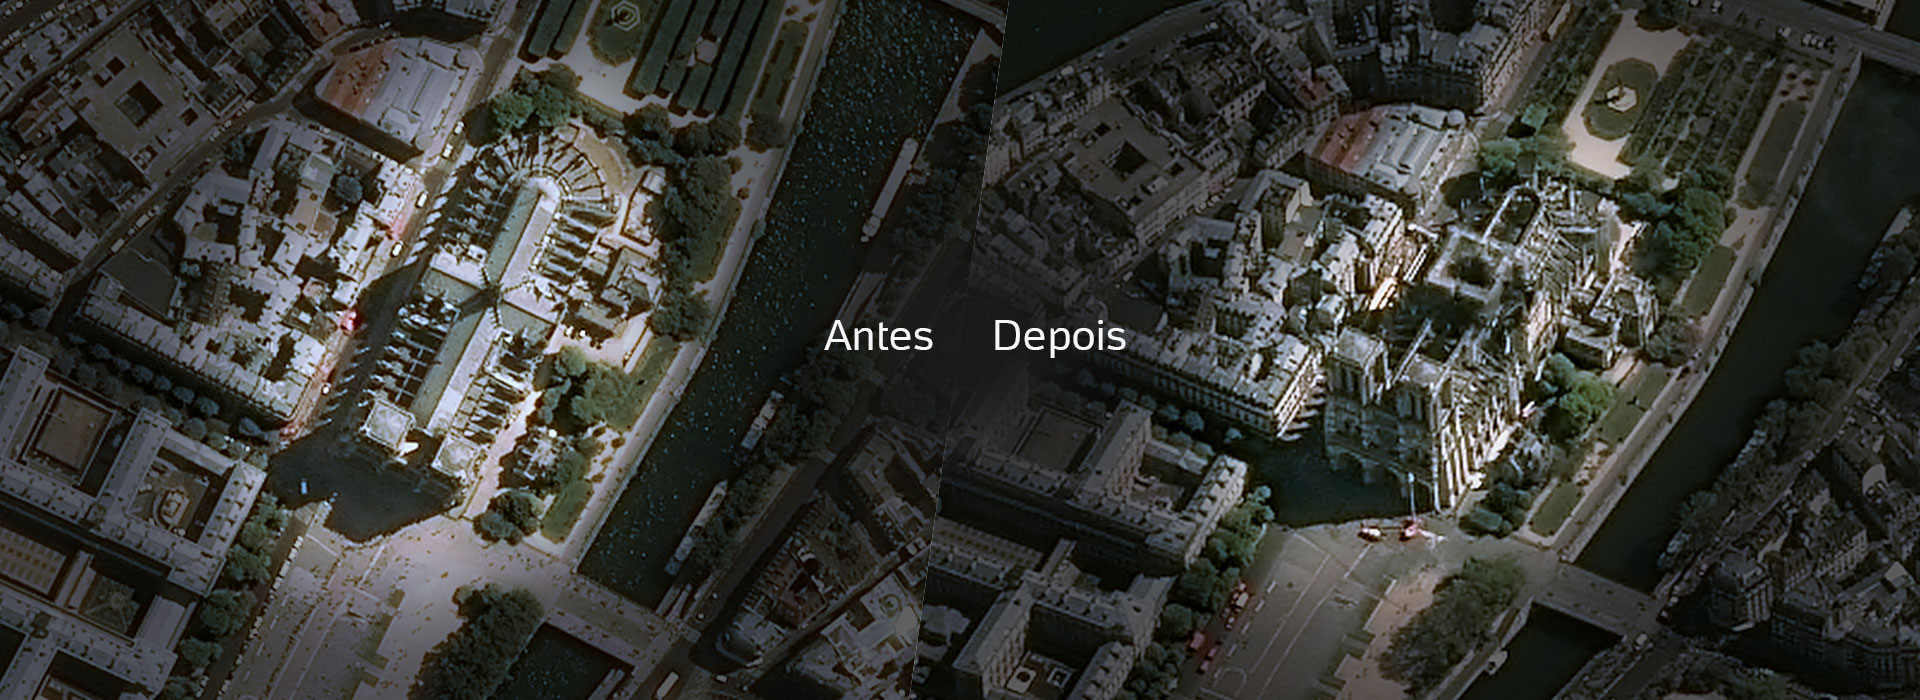 Cnes 2019, Distribution Airbus DS